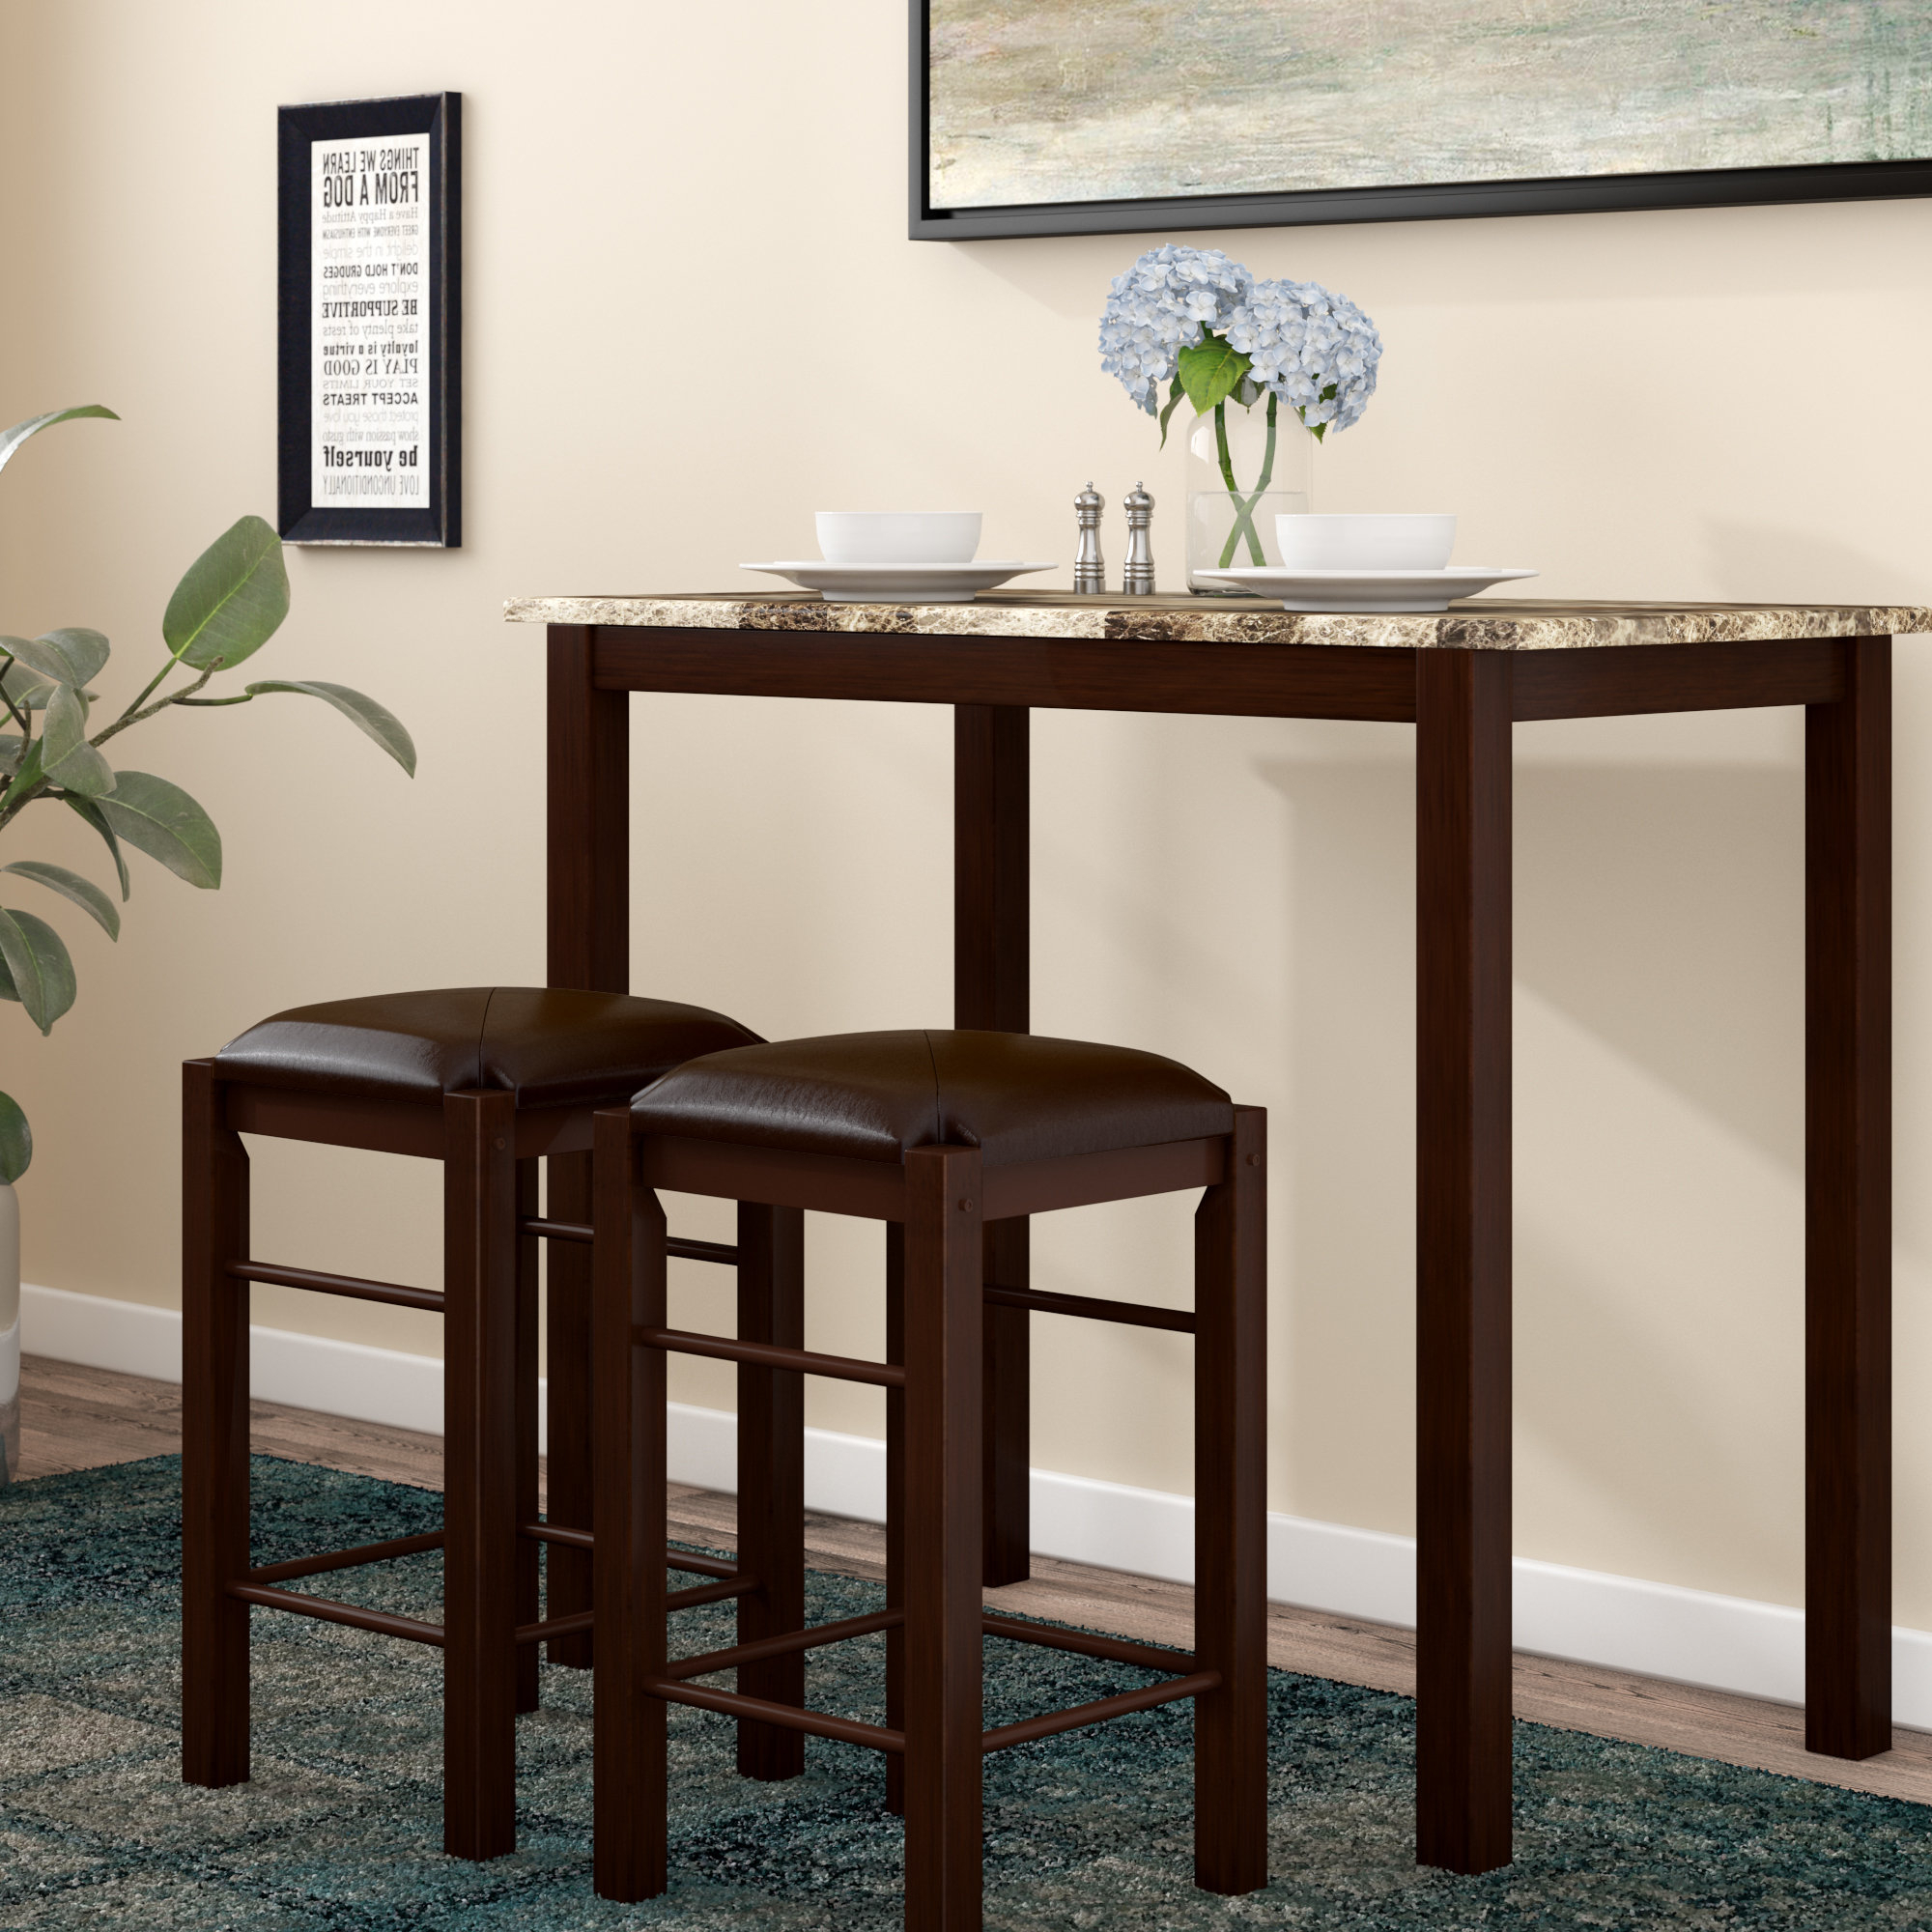 Penelope 3 Piece Counter Height Wood Dining Set With Recent Tappahannock 3 Piece Counter Height Dining Sets (View 11 of 20)